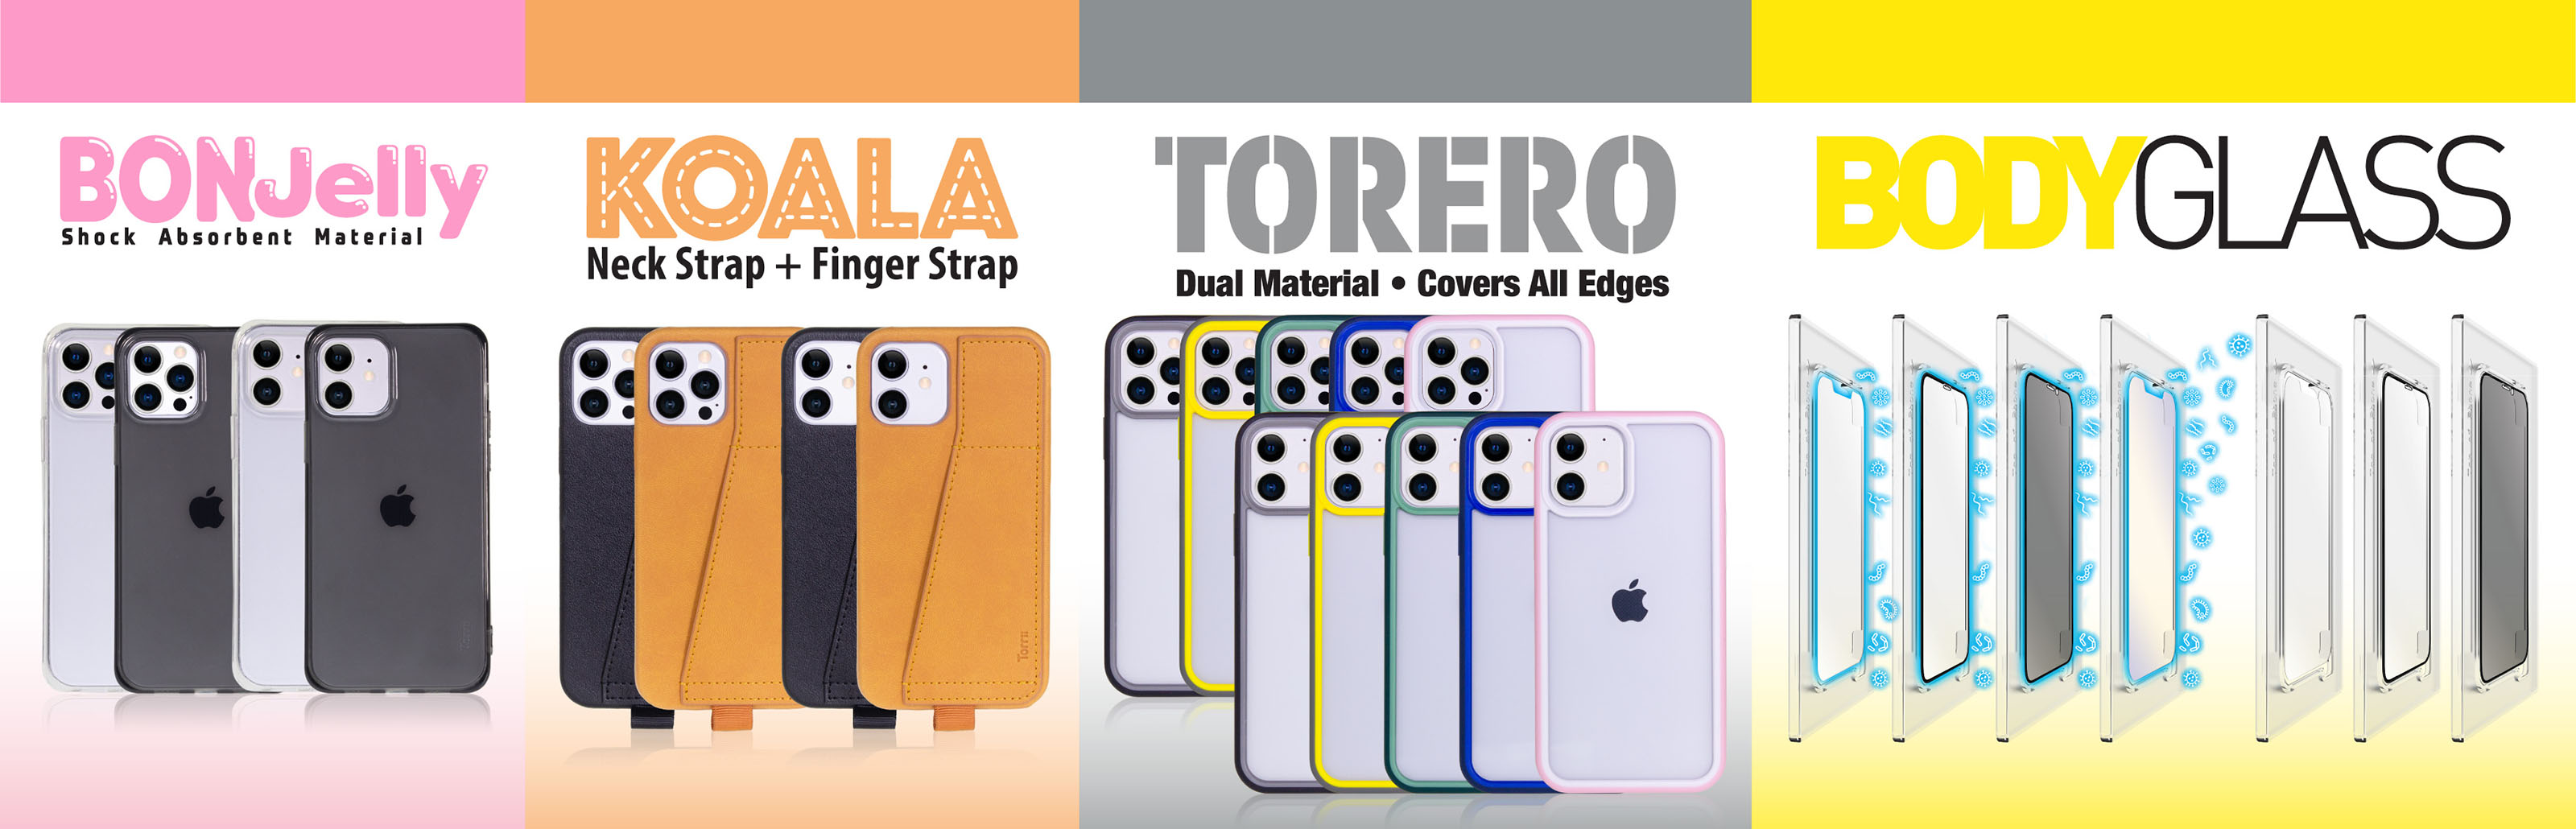 Torrii introduces new line of cases for iPhone 12 mini, iPhone 12/12 Pro and iPhone 12 Pro Max.